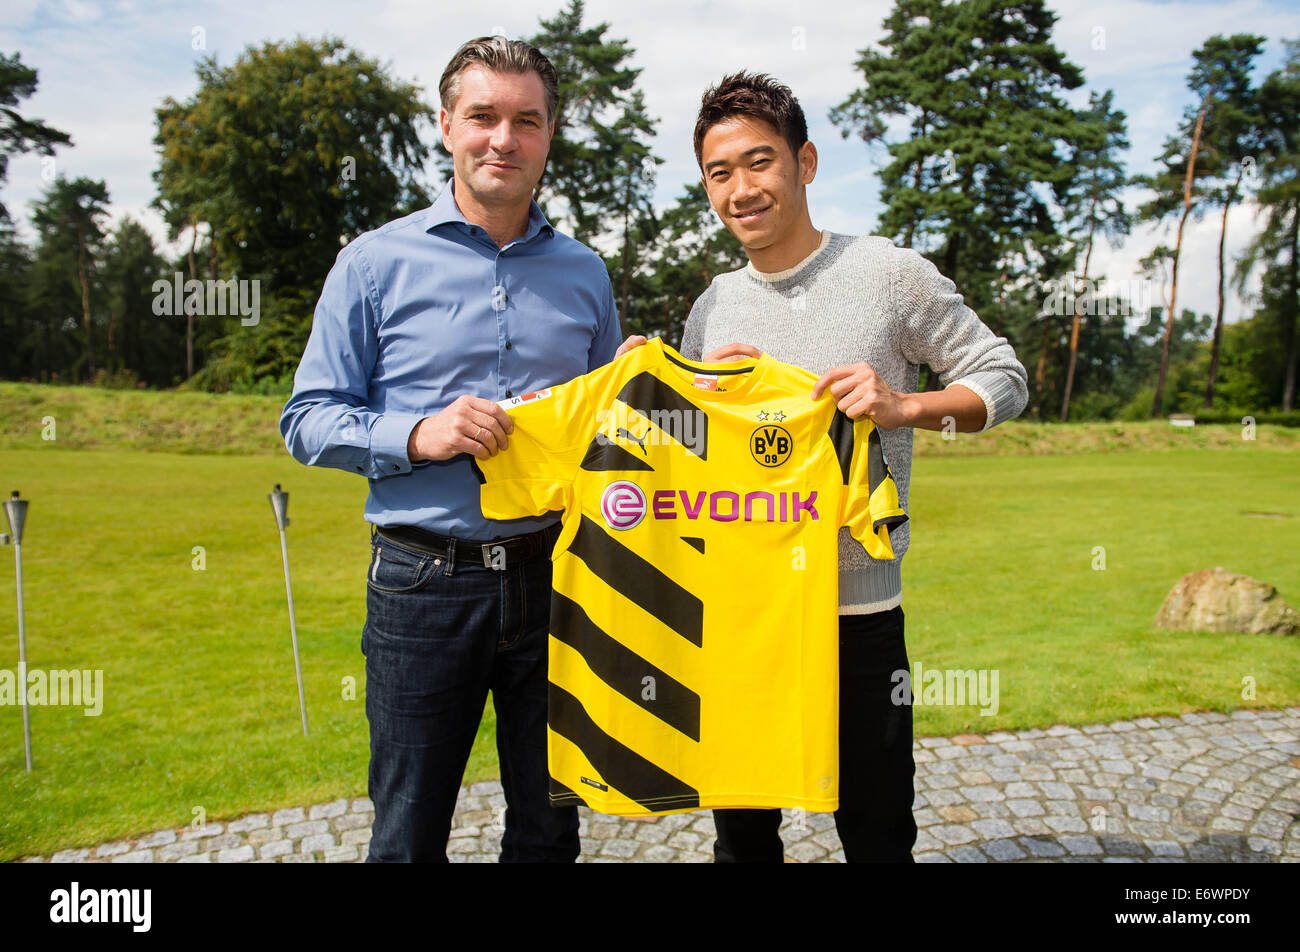 ¿Cuánto mide Shinji Kagawa? - Real height Japanese-player-shinji-kagawa-and-borussia-dortmund-sport-director-E6WPDY